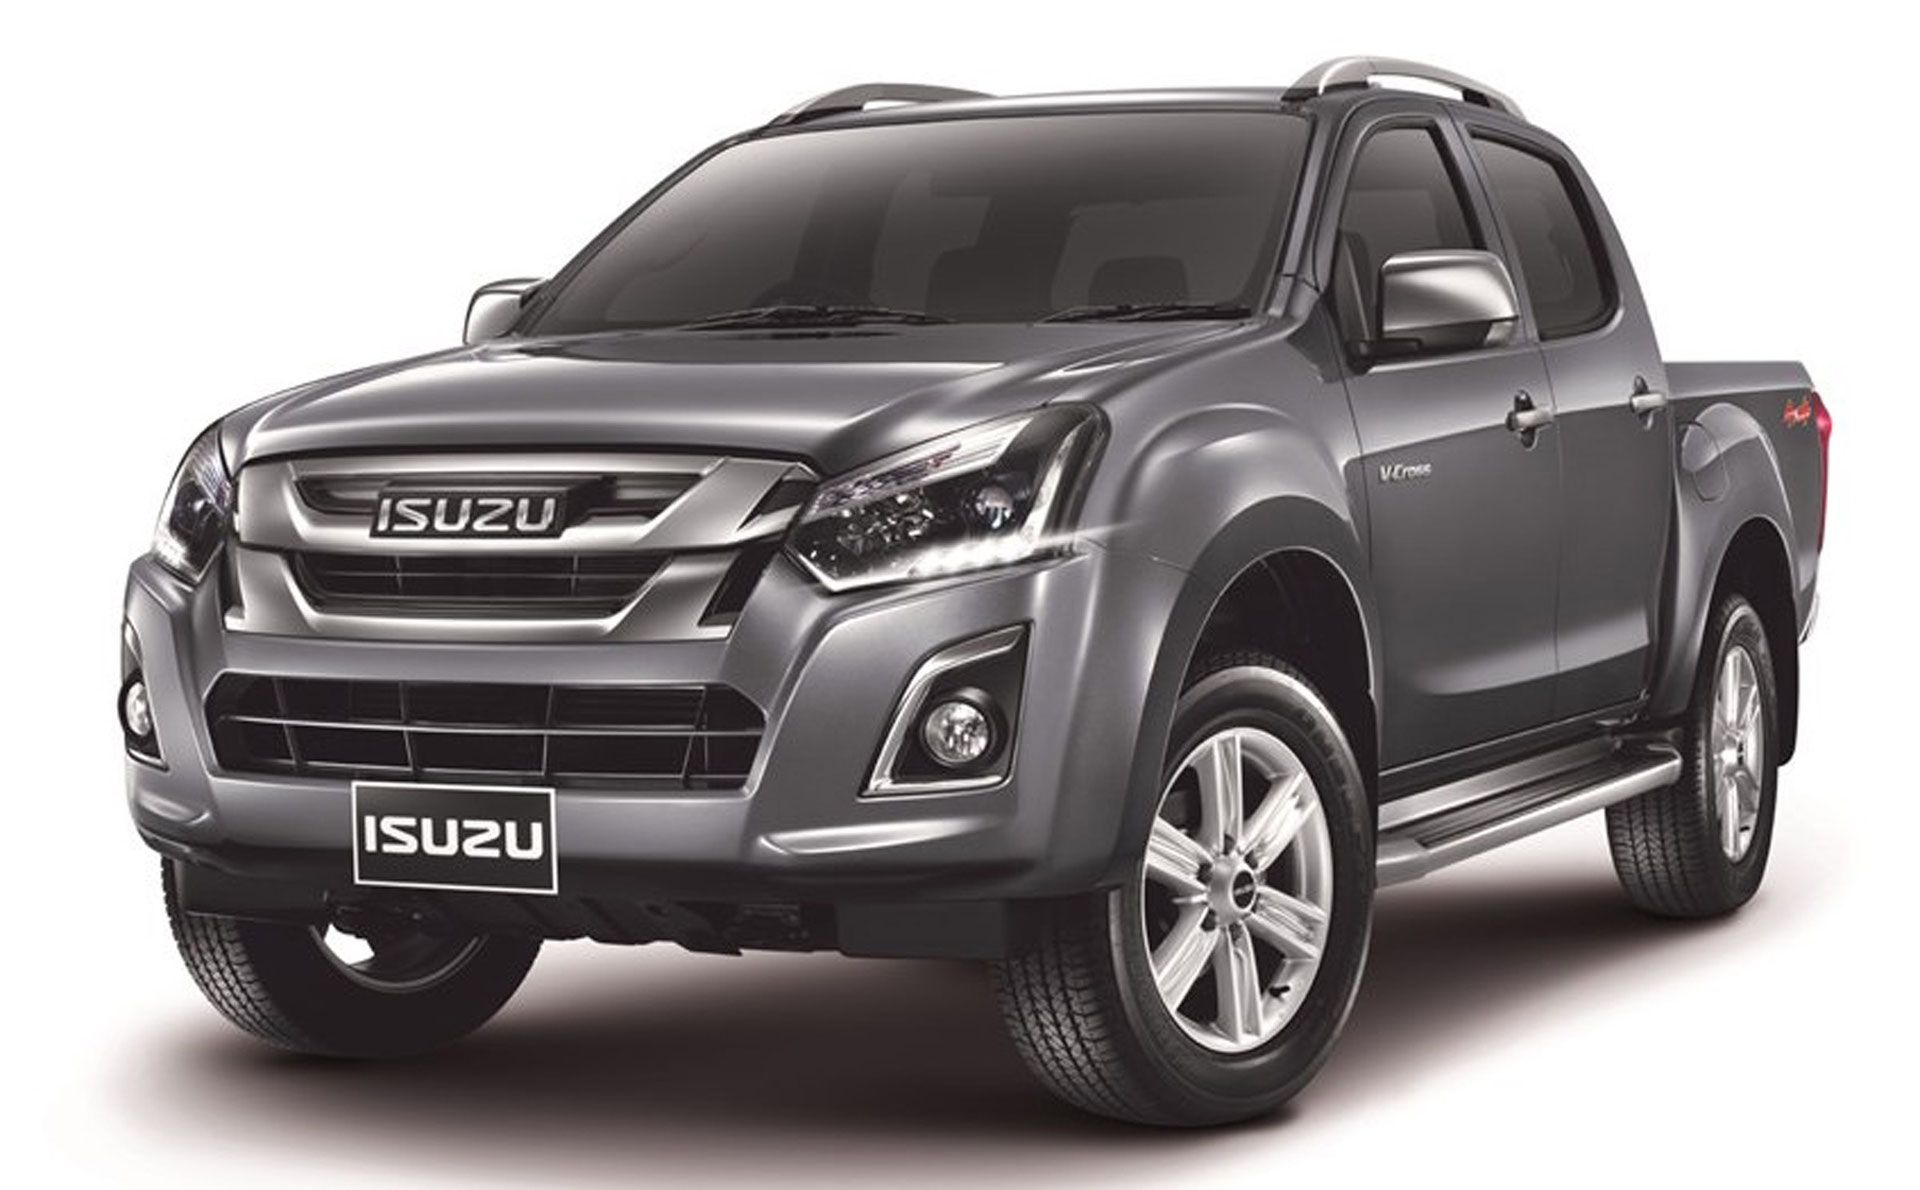 19 Isuzu PDF Manuals Download for Free! - Сar PDF Manual ... on